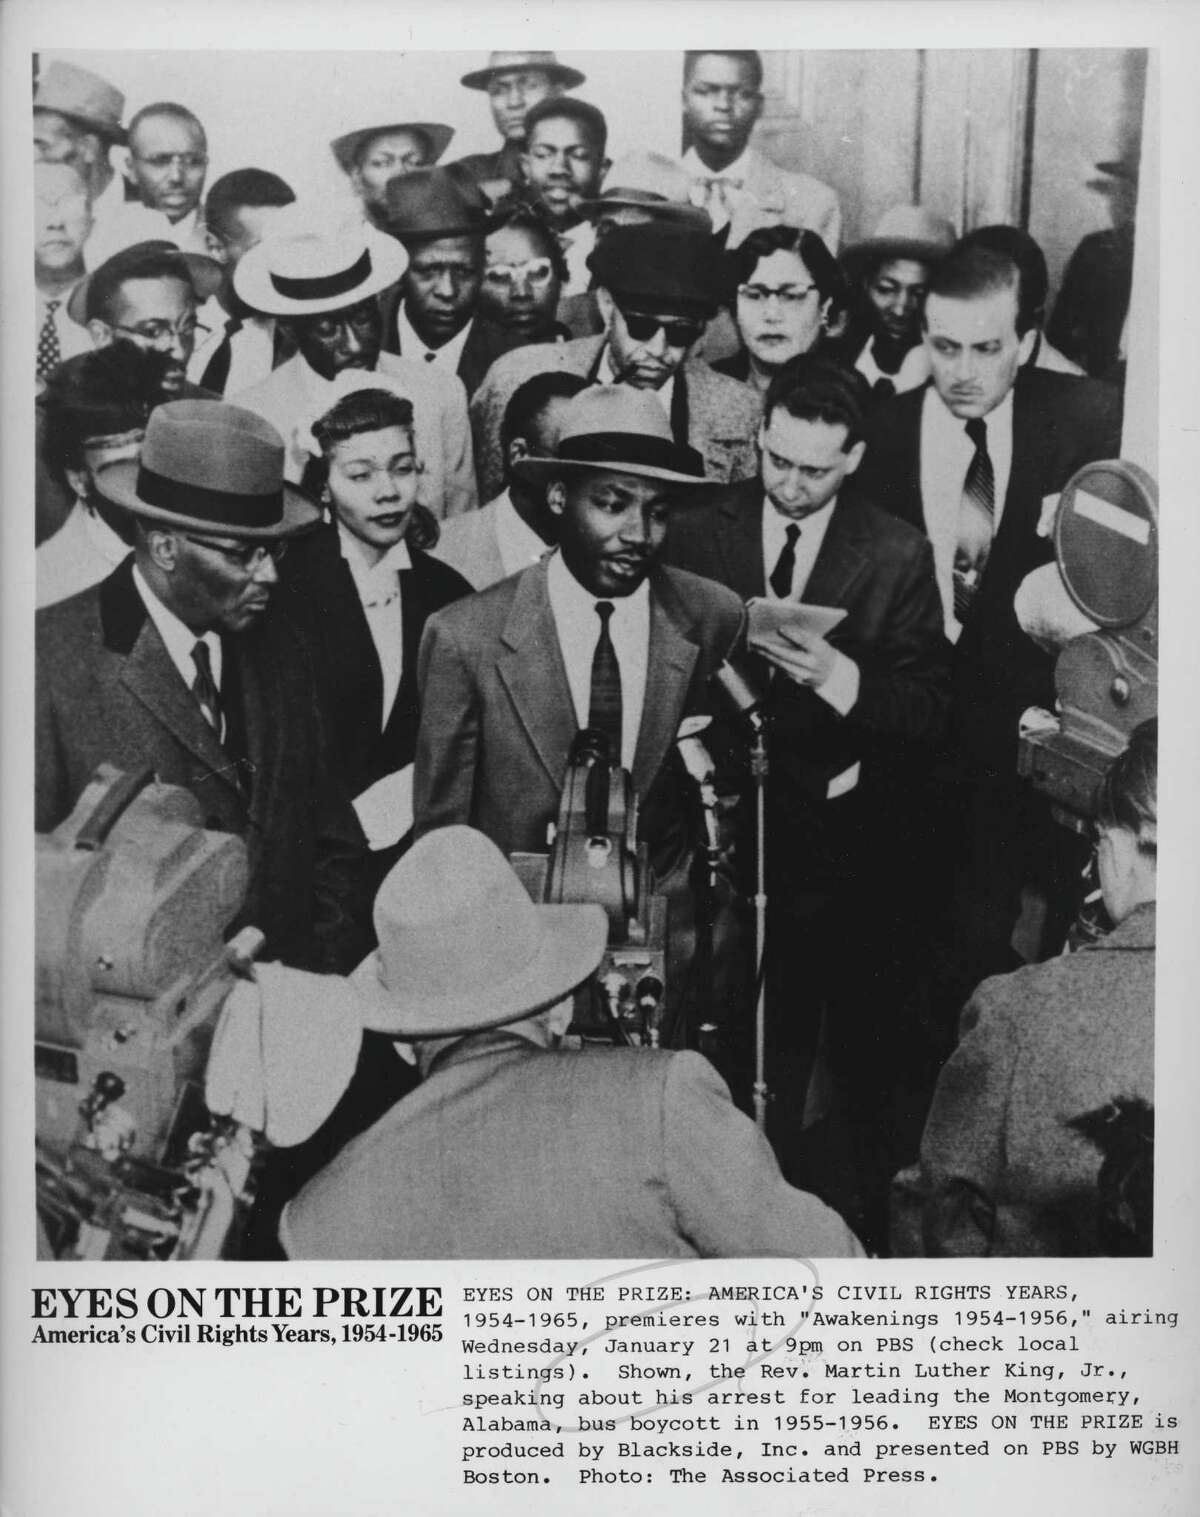 """Martin Luther King Jr. speaks to reporters about his arrest for leading the Montgomery, Ala., bus boycott in 1955-56 in an image that was included in the 1987-88 TV documentary """"Eyes on the Prize."""""""